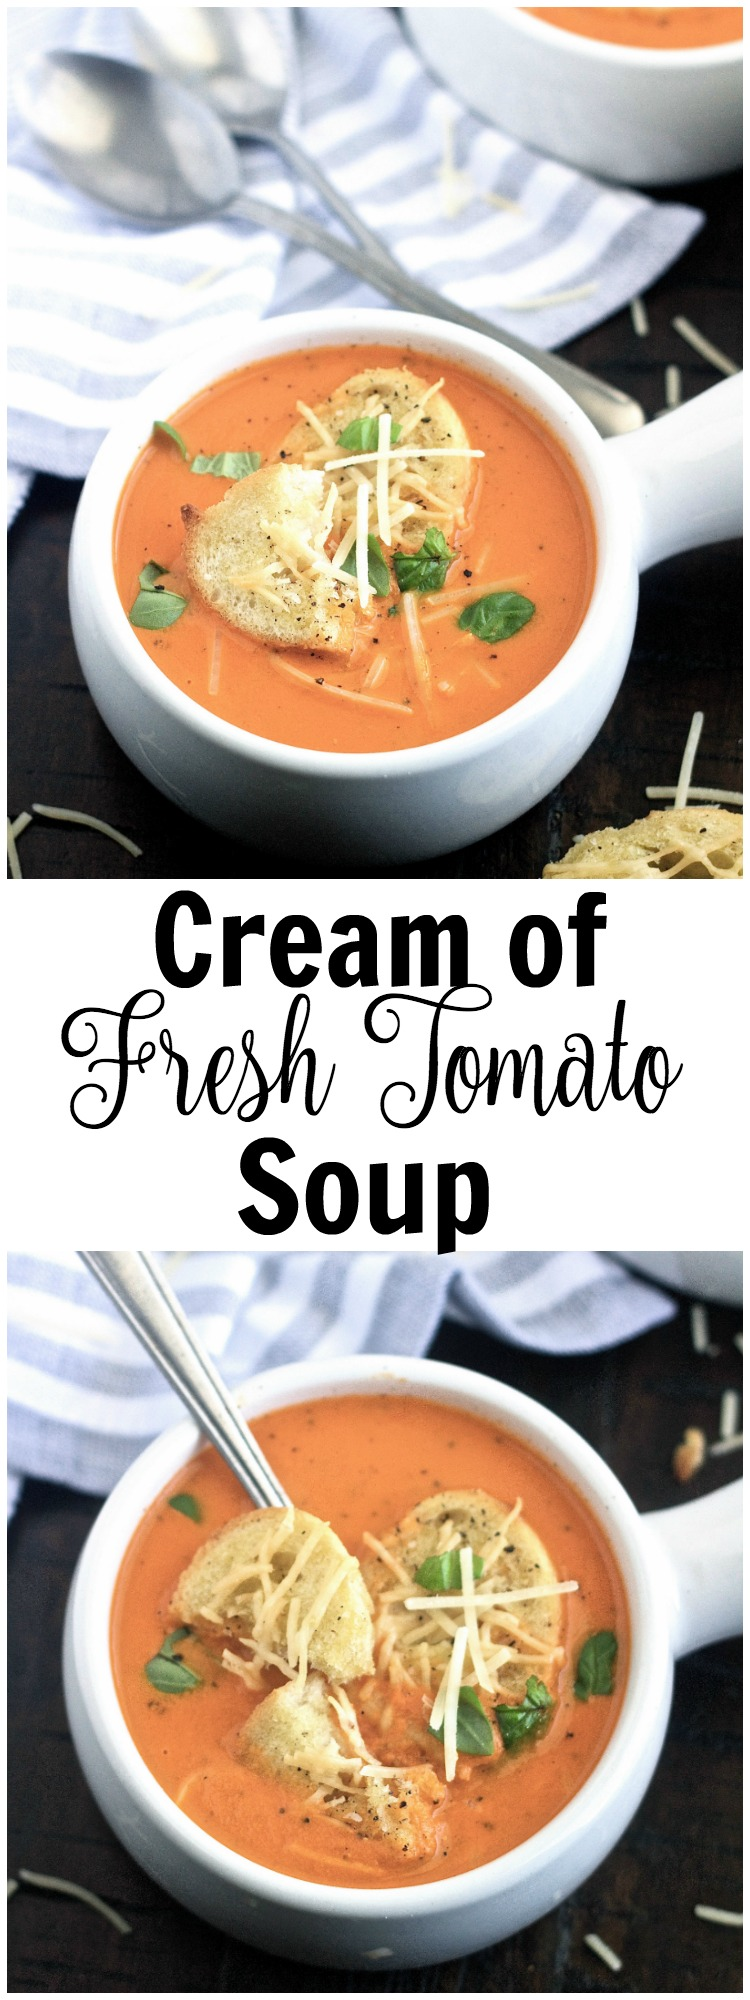 Cream Of Fresh Tomato Soup 5 Boys Baker